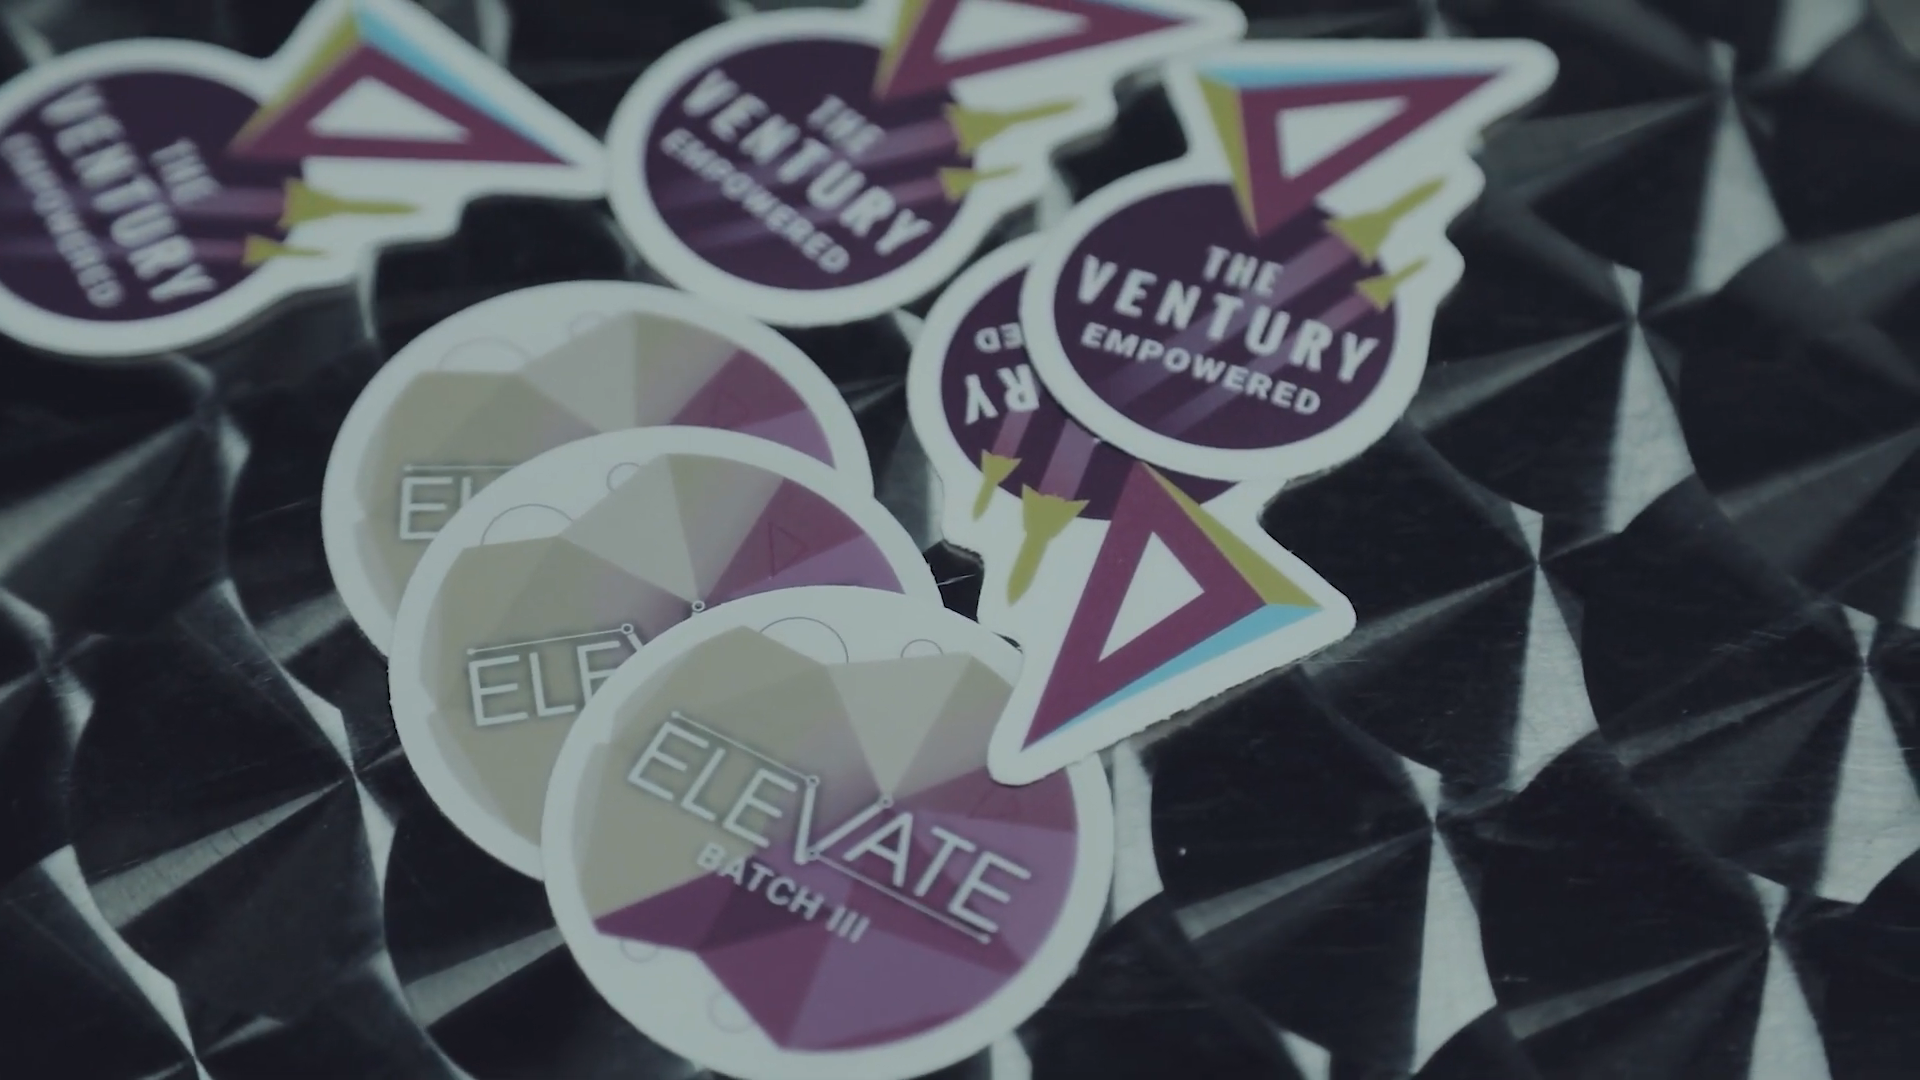 Elevate Accelerator Program Video